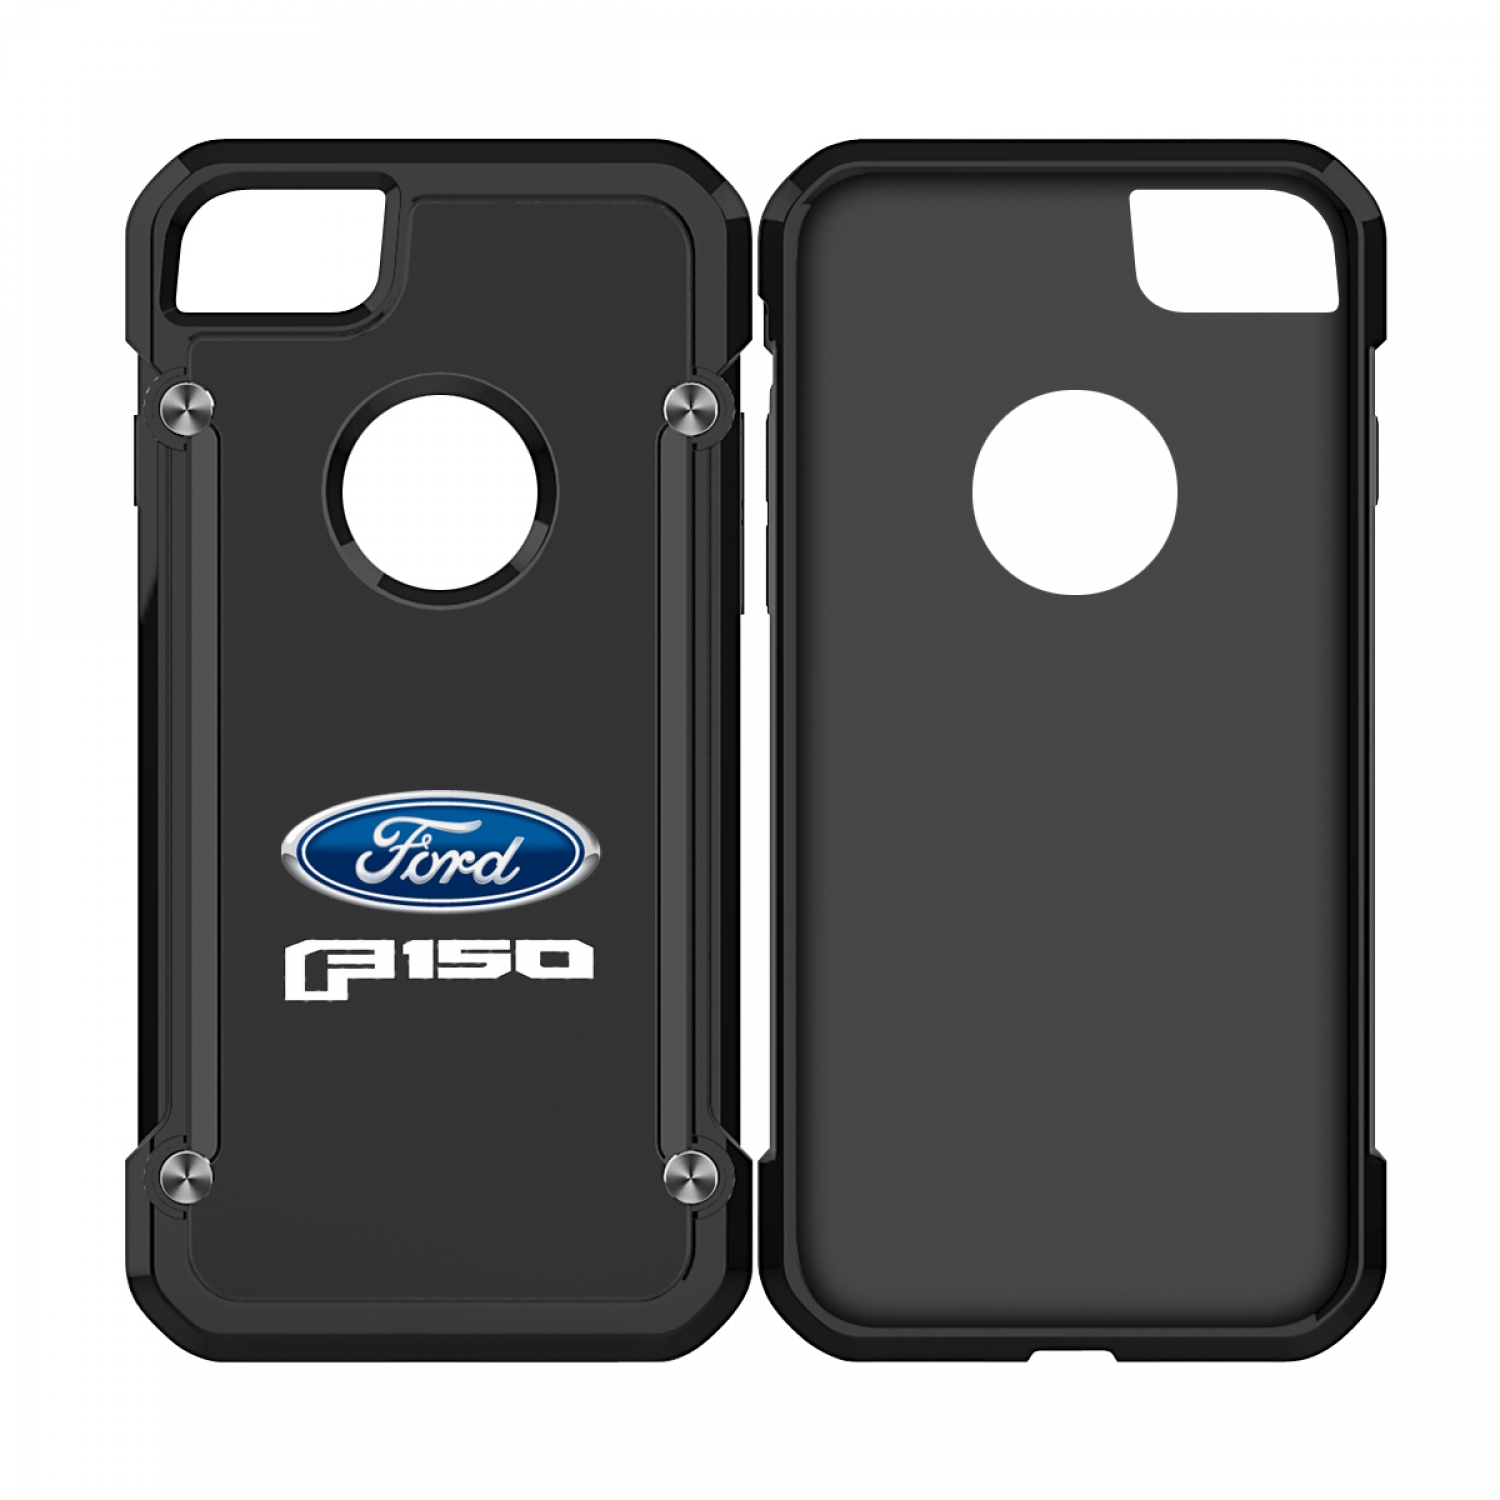 Ford F-150 2015 to 2019 iPhone 7 iPhone 8 TPU Shockproof Clear Cell Phone Case